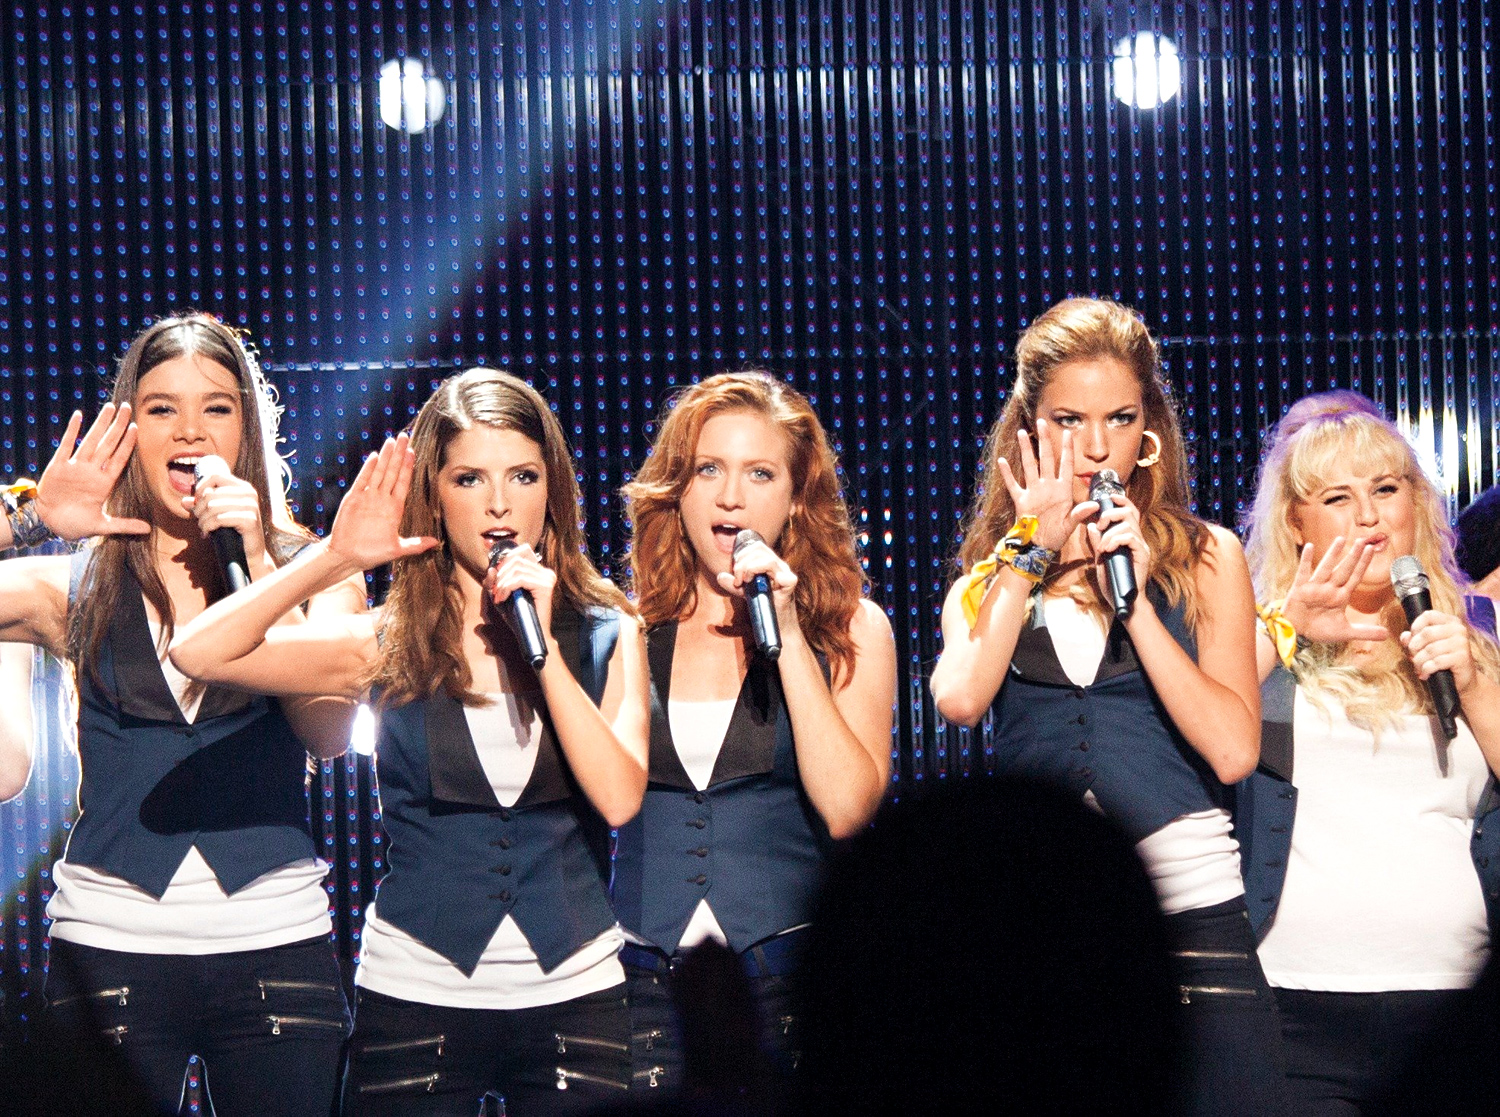 Hailee Steinfeld, Anna Kendrick, Brittany Snow, Alexis Knapp, and Rebel Wilson in Pitch Perfect 2